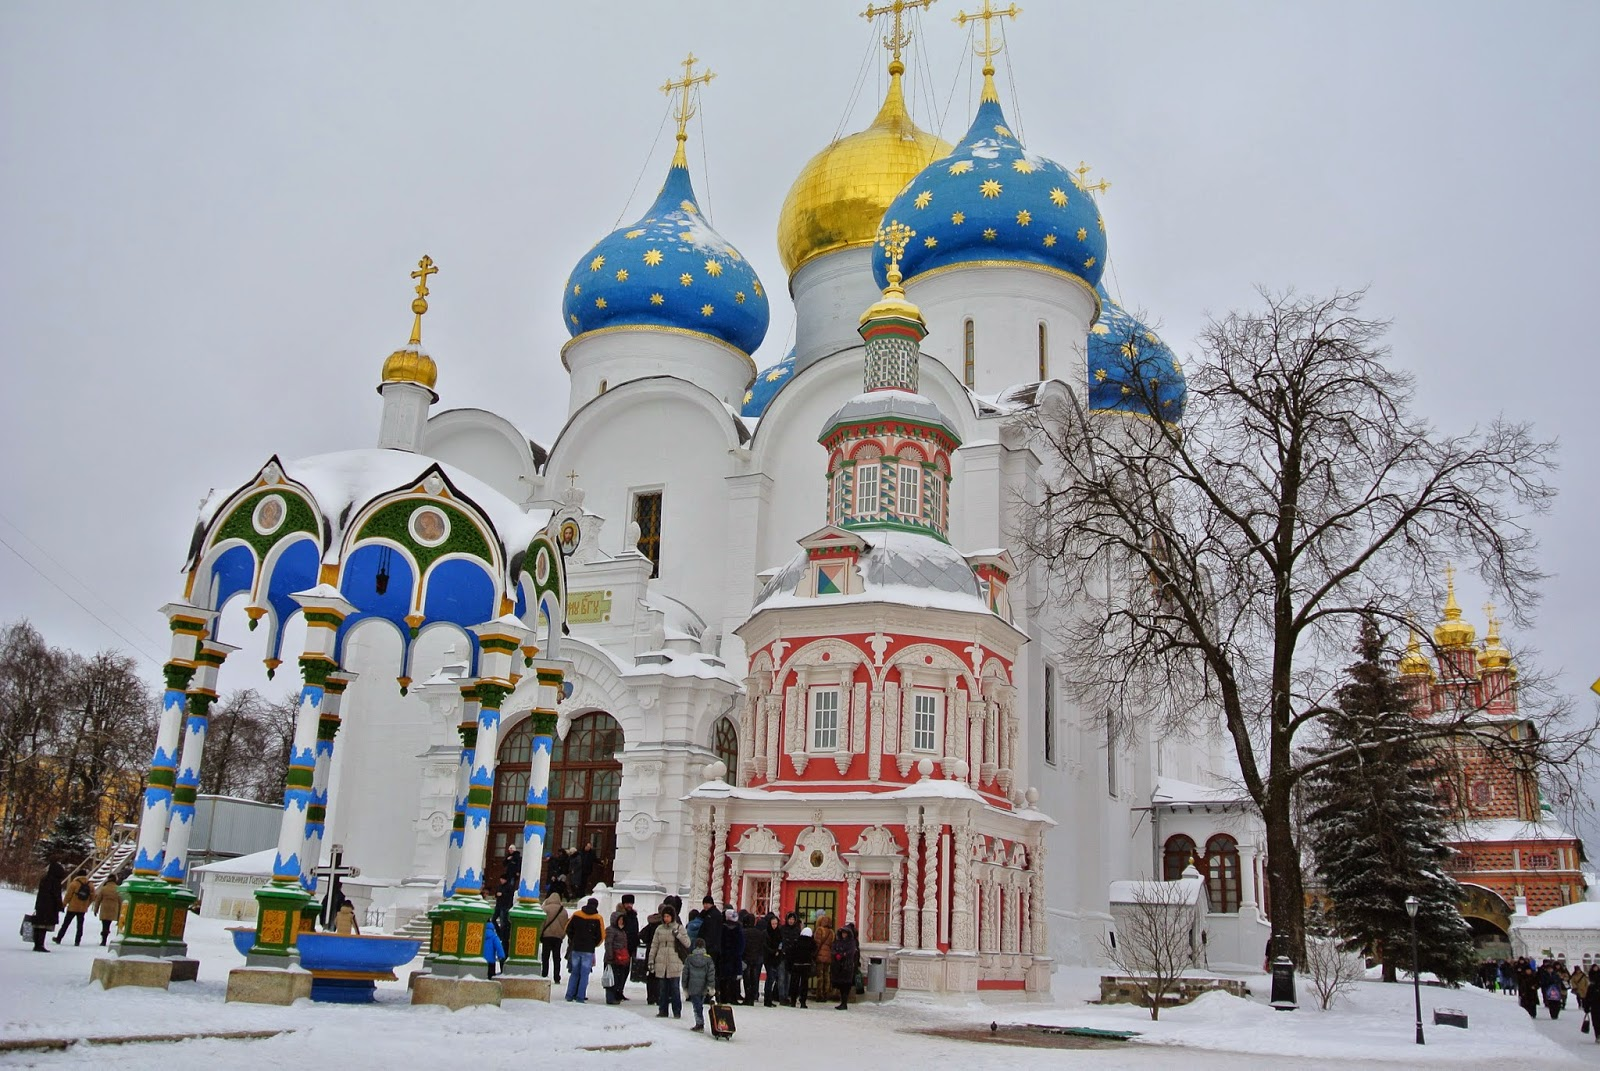 Cathedral domes at Sergiev Posad, Russia